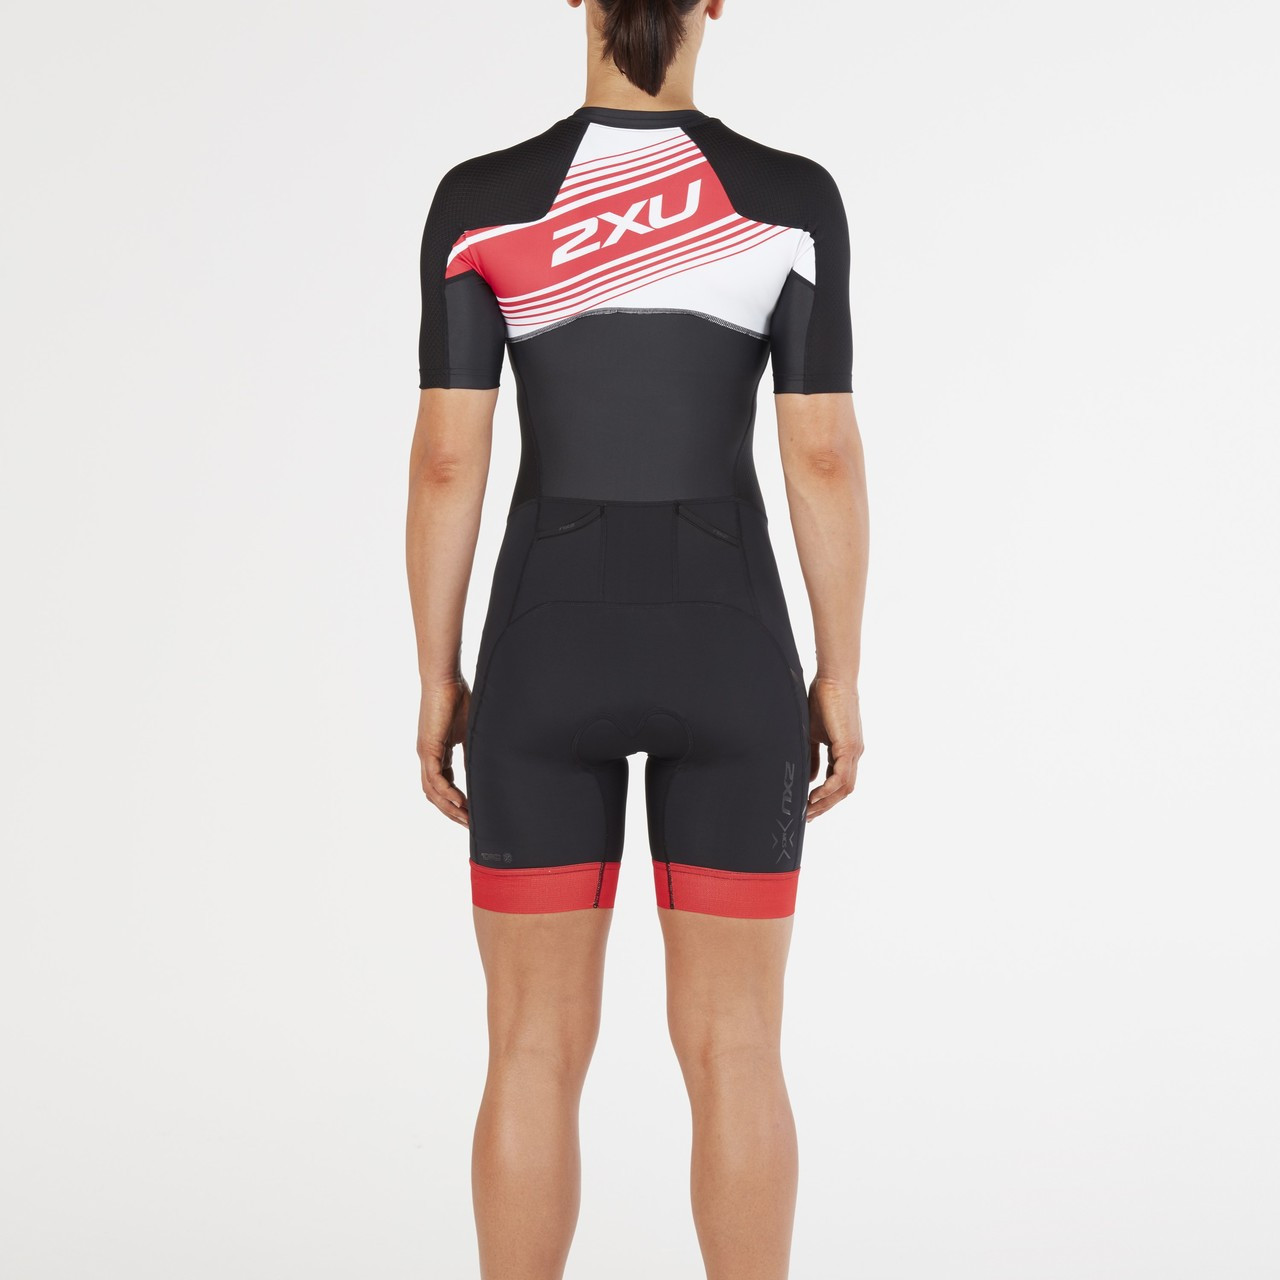 a958decd165 ... 2XU Women's Compression Sleeved Tri Suit - Back